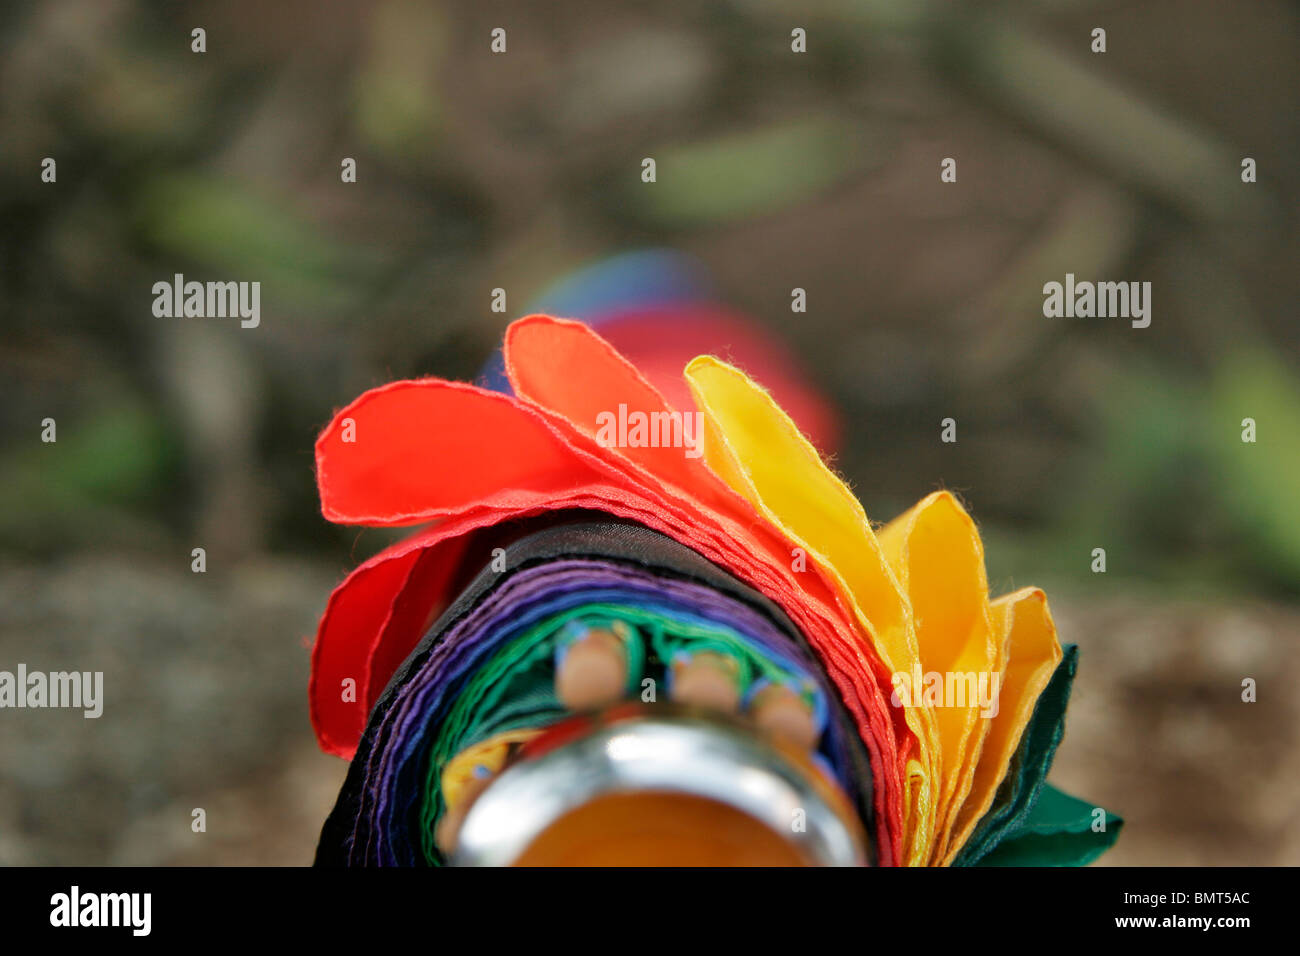 Abstract in form of various colors on folded umbrella - Stock Image